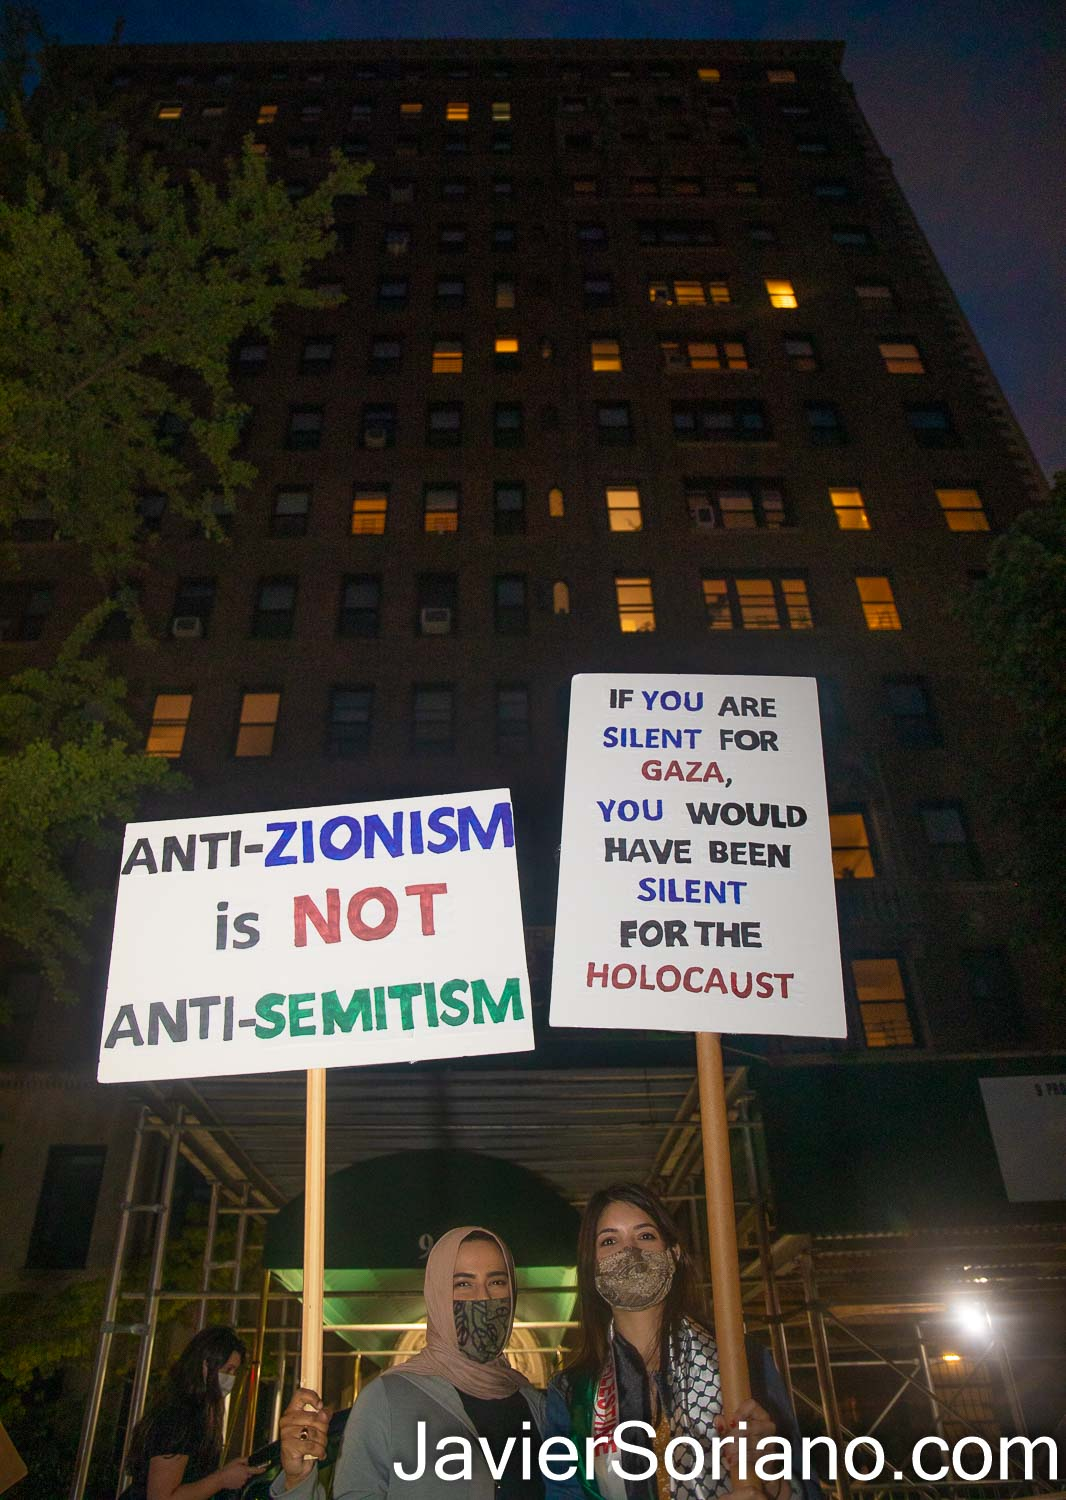 Friday, May 21, 2021. New York City – Jews, Palestinians and other New Yorkers gathered at Grand Army Plaza in the borough of Brooklyn to stand in solidarity with Palestine. After the rally, demonstrators marched to the building of the United States Senator Charles Ellis Schumer. The luxury building is in front of Prospect Park. THIS PHOTO: Two female protesters in front of Senator Chuck Schumer's building in Brooklyn, NYC. Photo by Javier Soriano/www.JavierSoriano.com